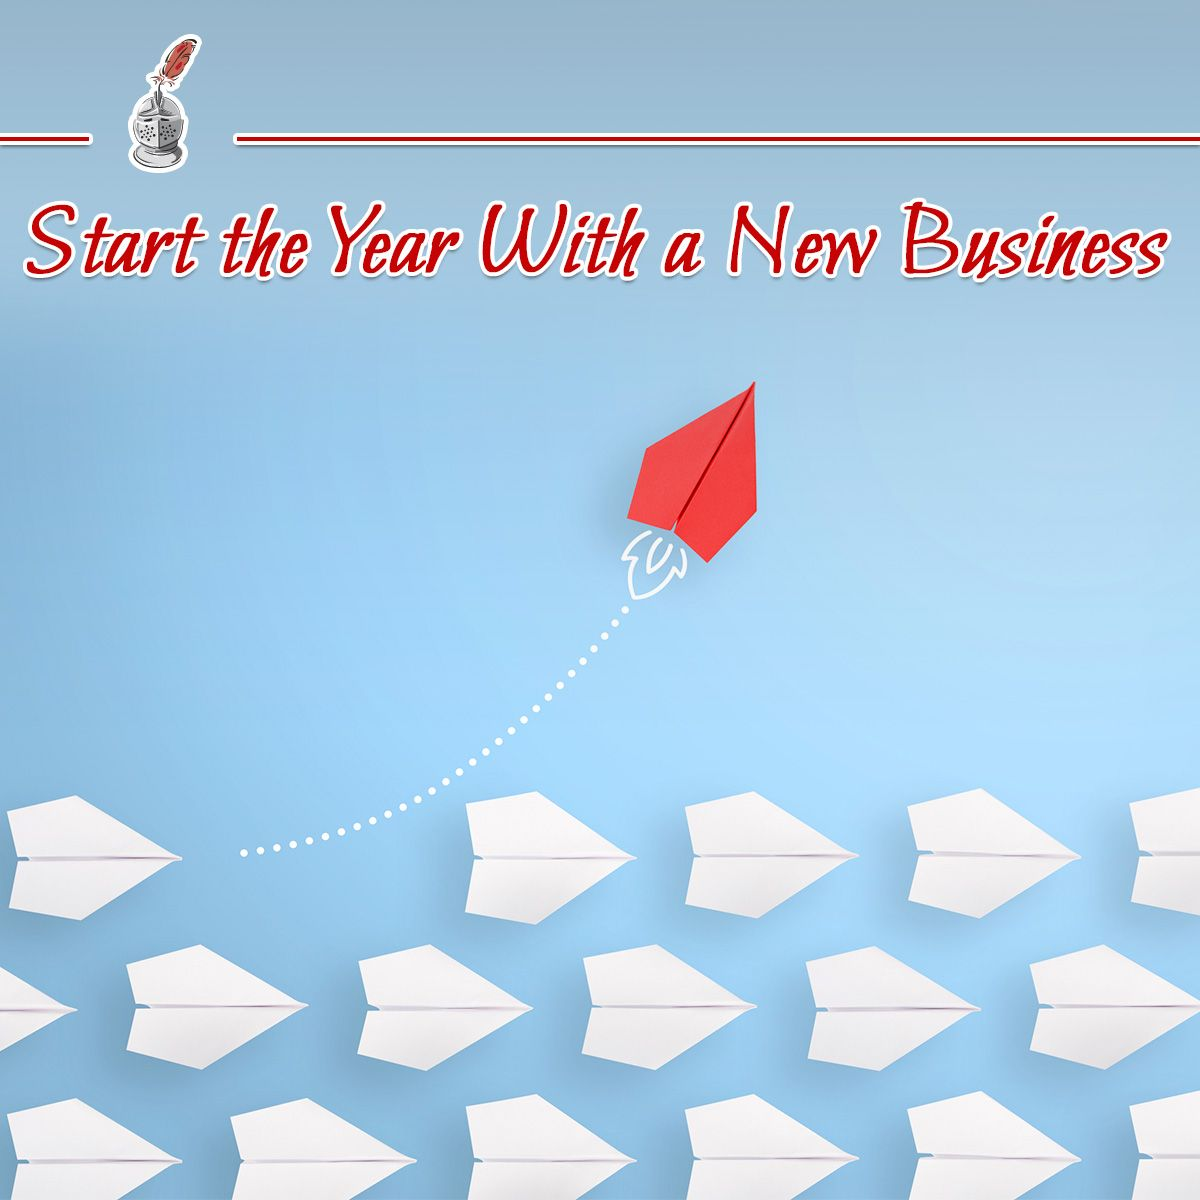 Start the Year With a New Business